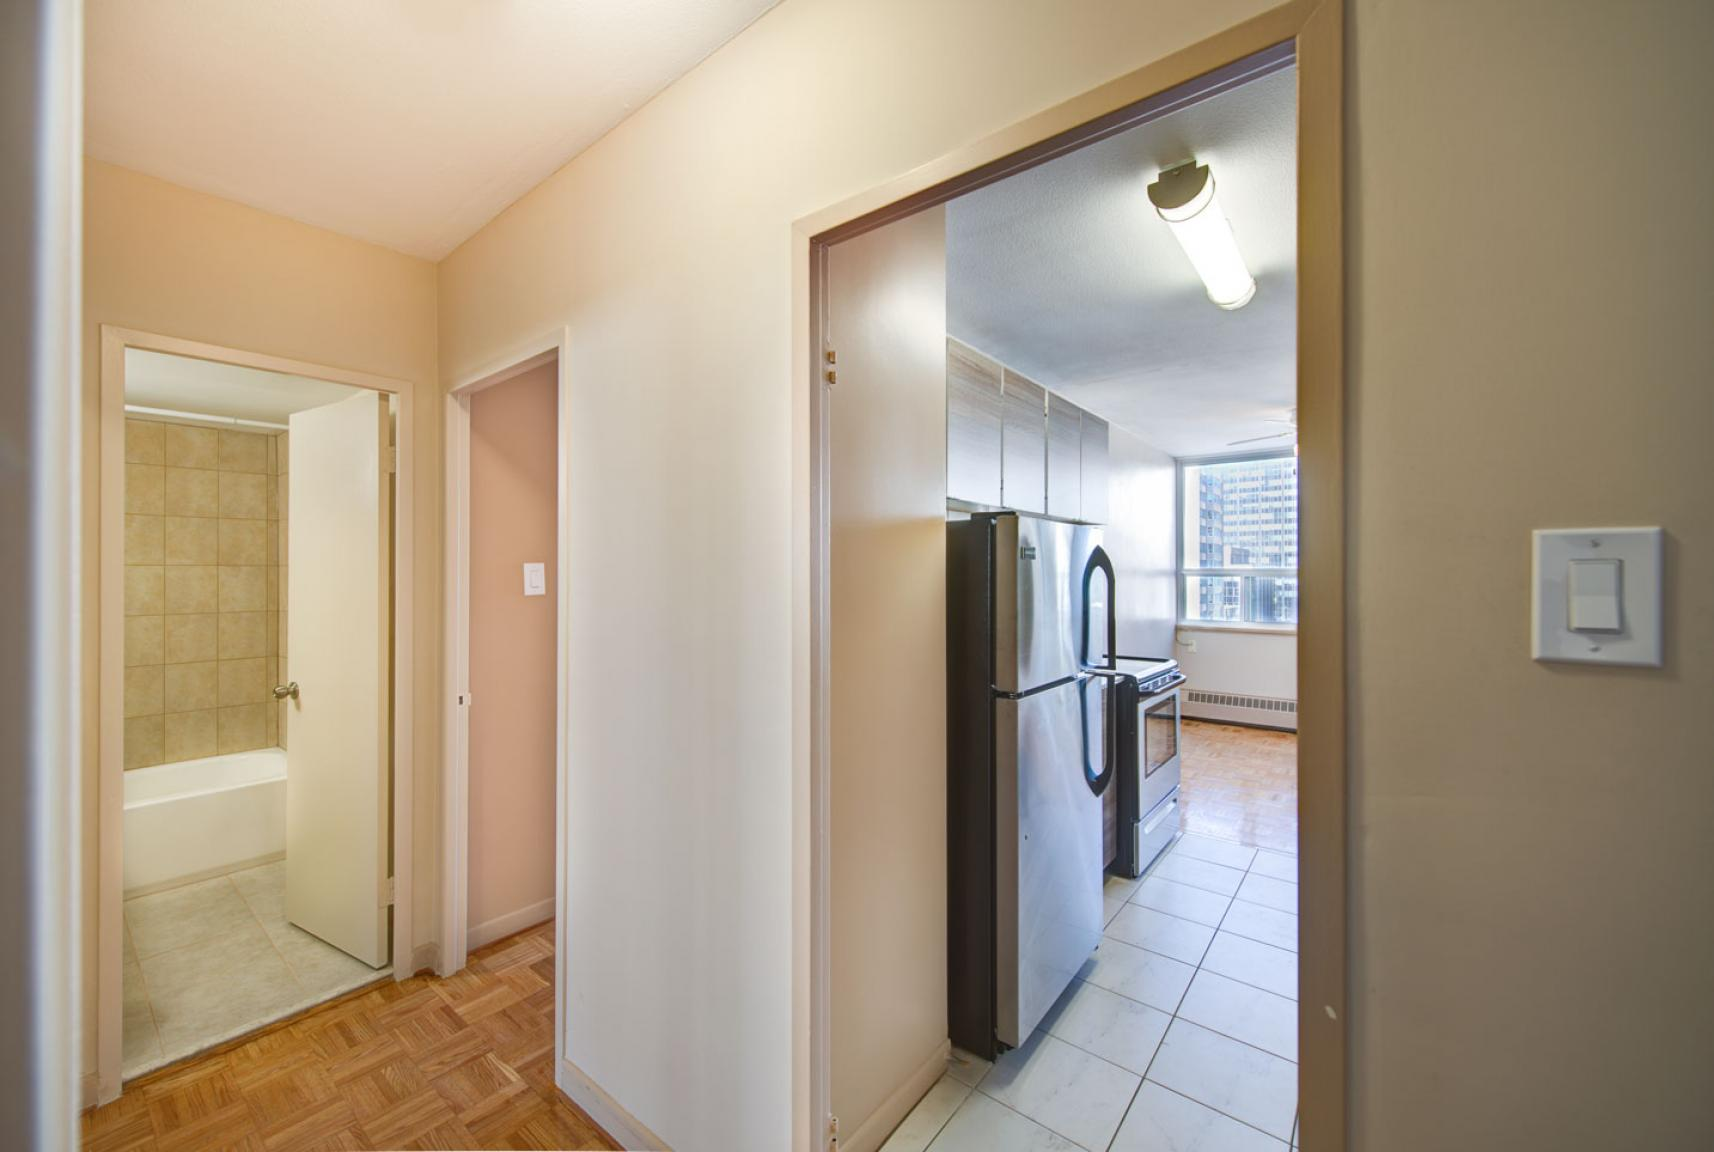 1 bedroom Apartments for rent in Toronto at Holly Tower - Photo 16 - RentersPages – L399824